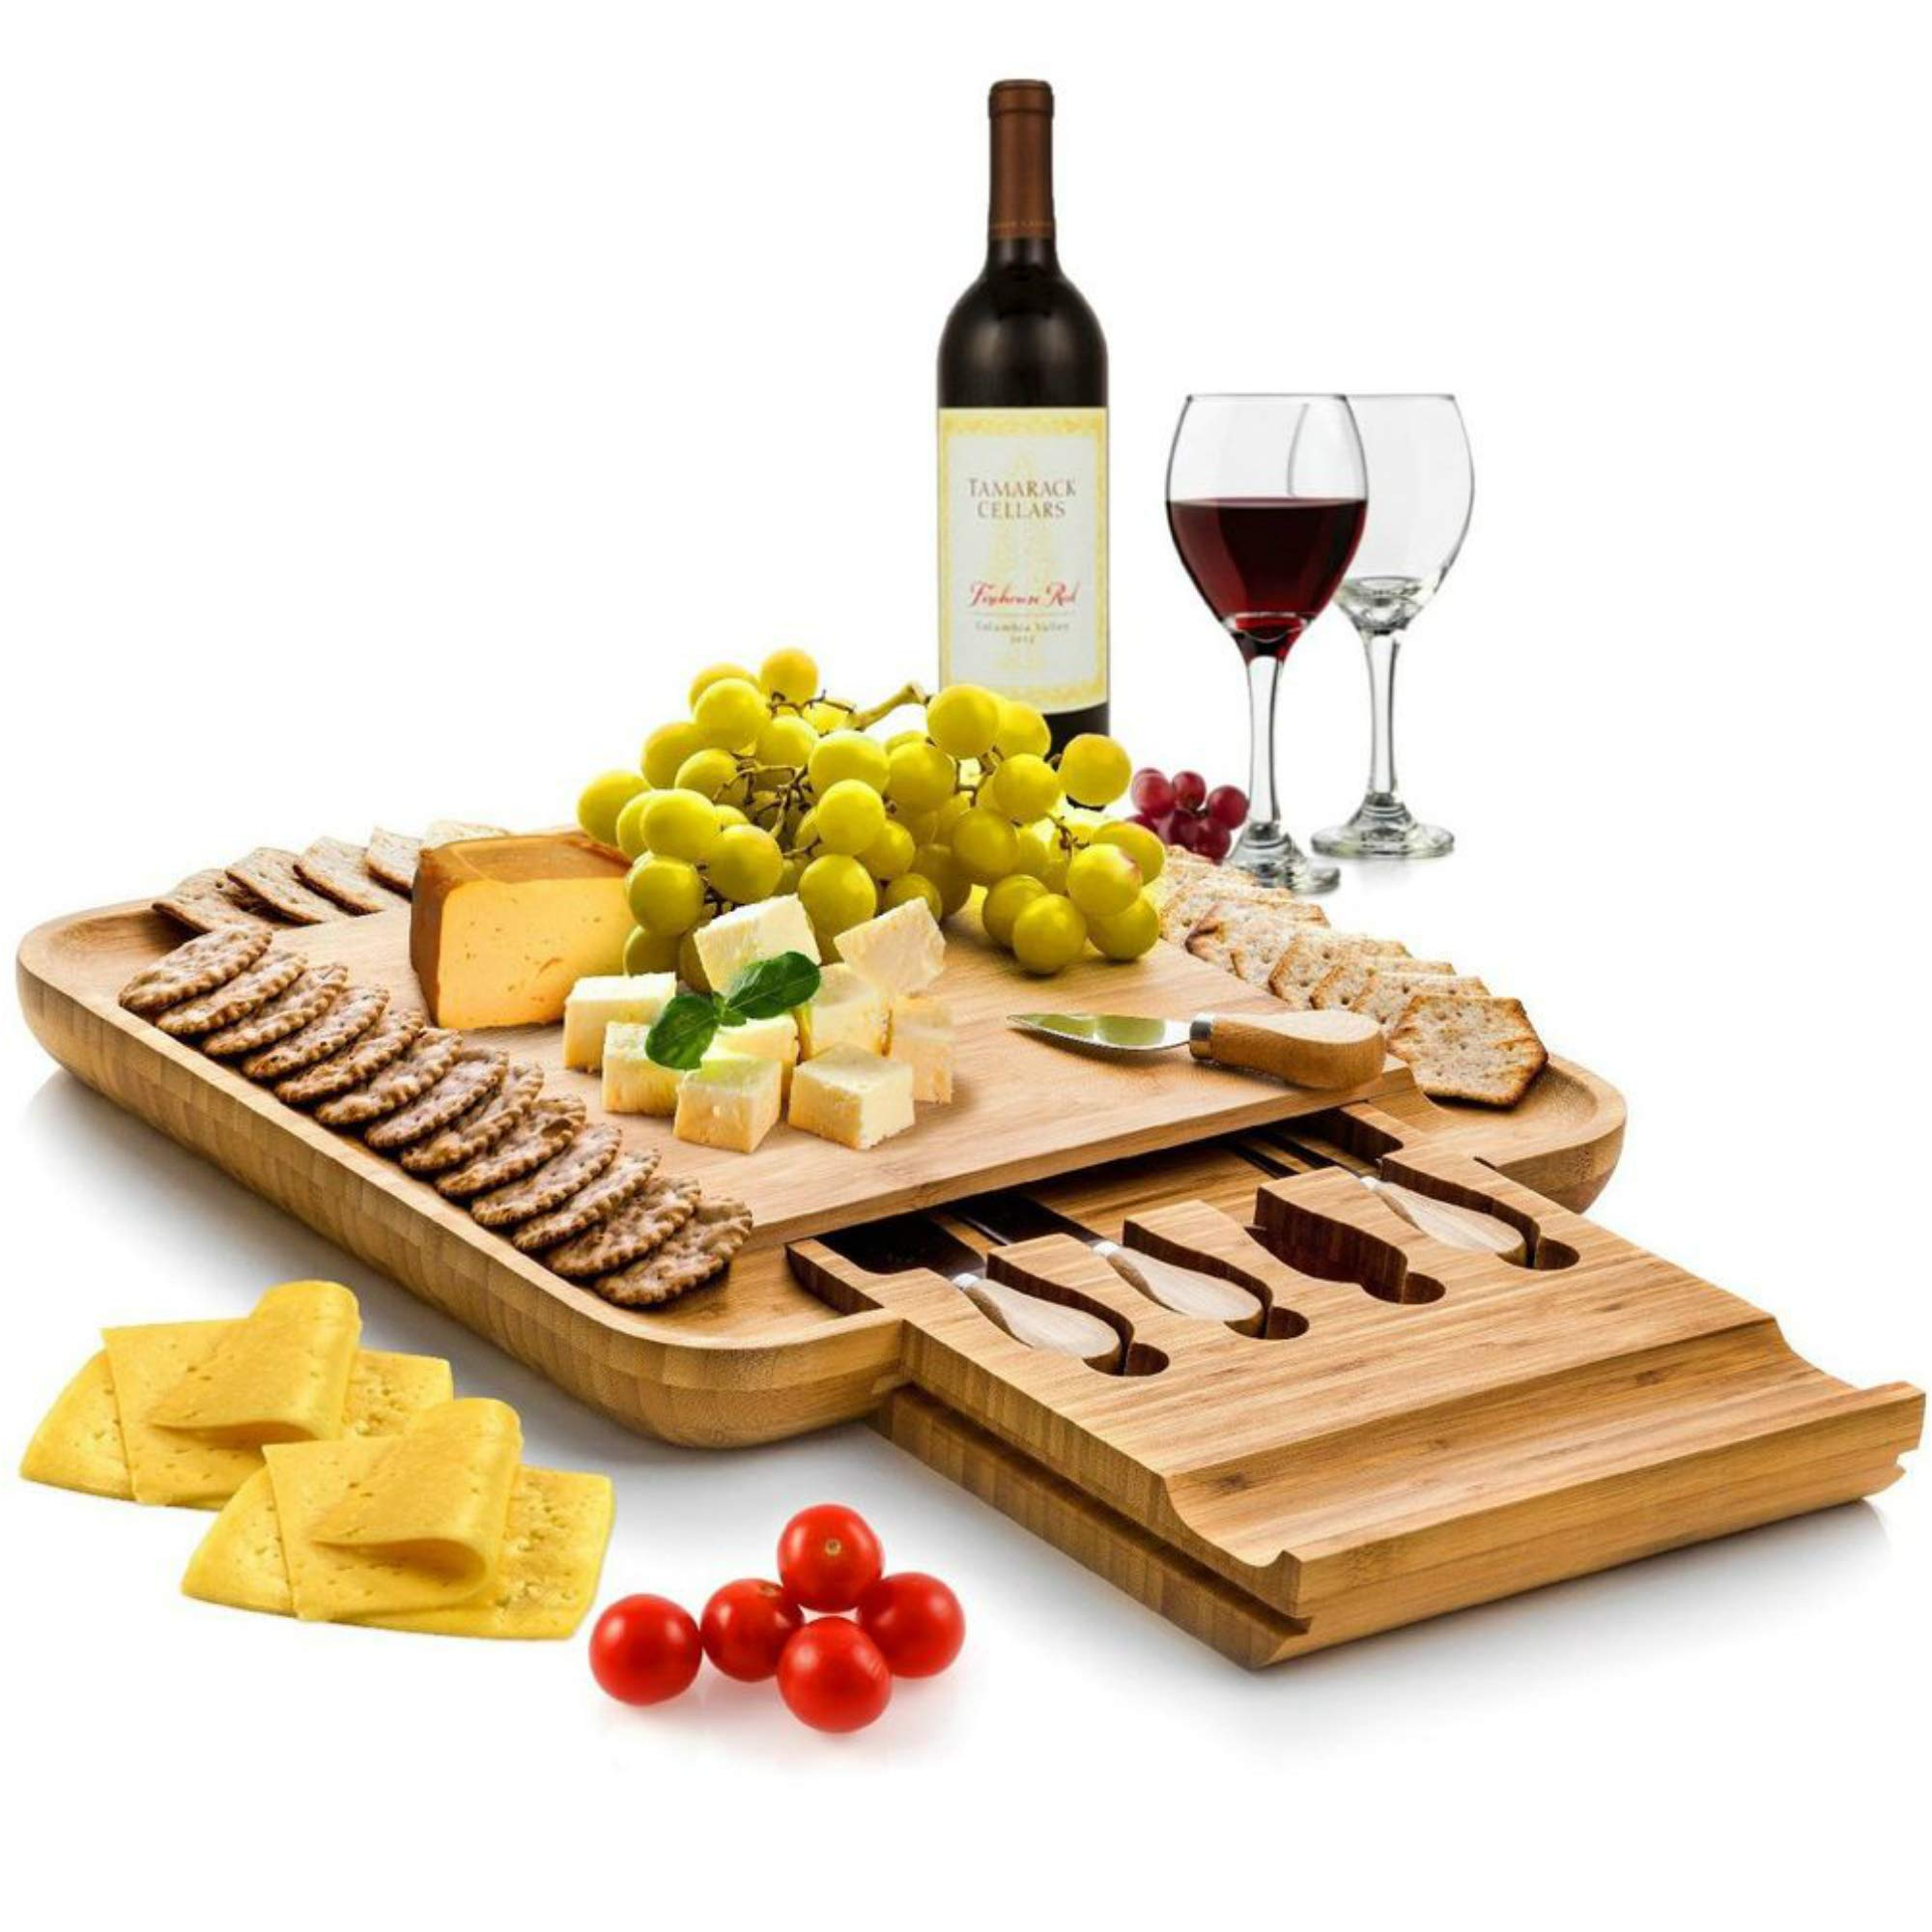 Bamboo Cheese Board with Cutlery Set - Organic Wood Charcuterie Tray Meat Board with 4 Stainless Steel Knife and Utensils - Great Gift Idea